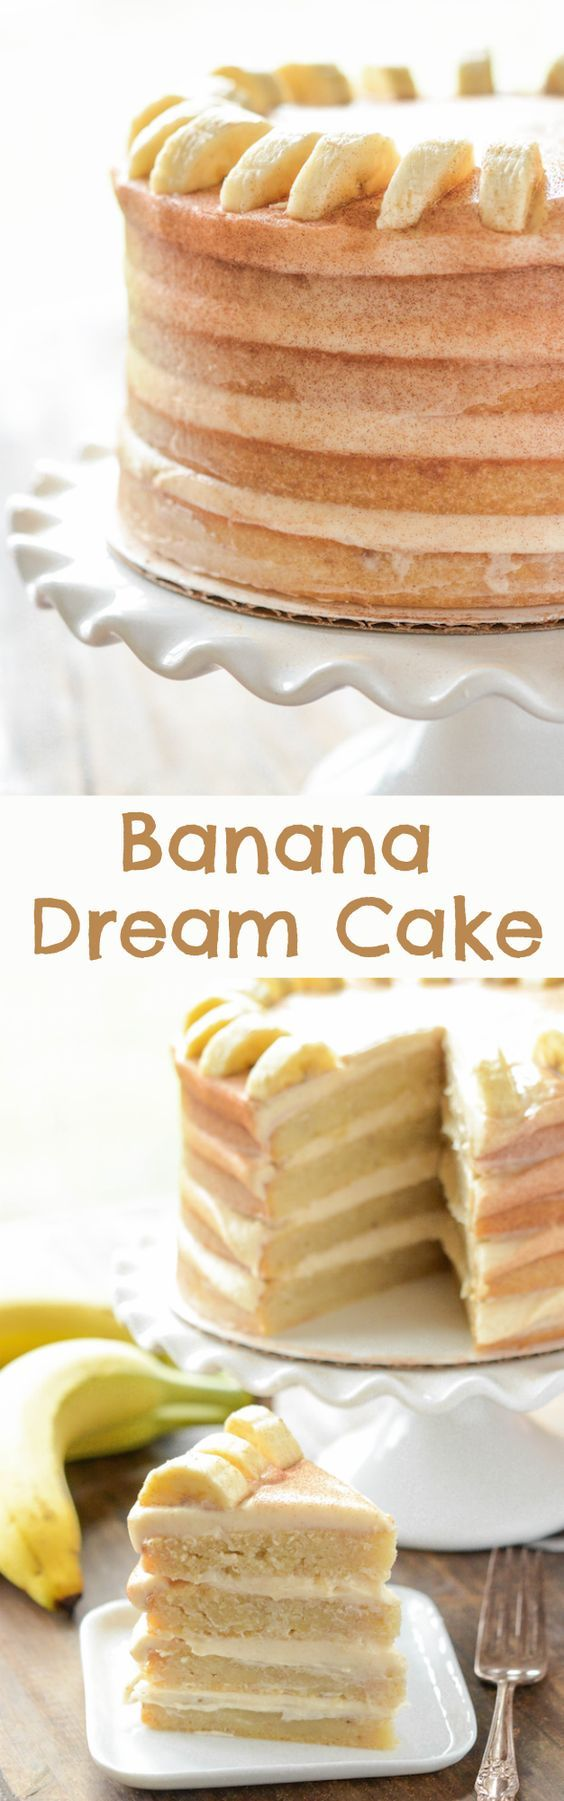 Banana Dream Cake with cinnamon cream cheese frosting!